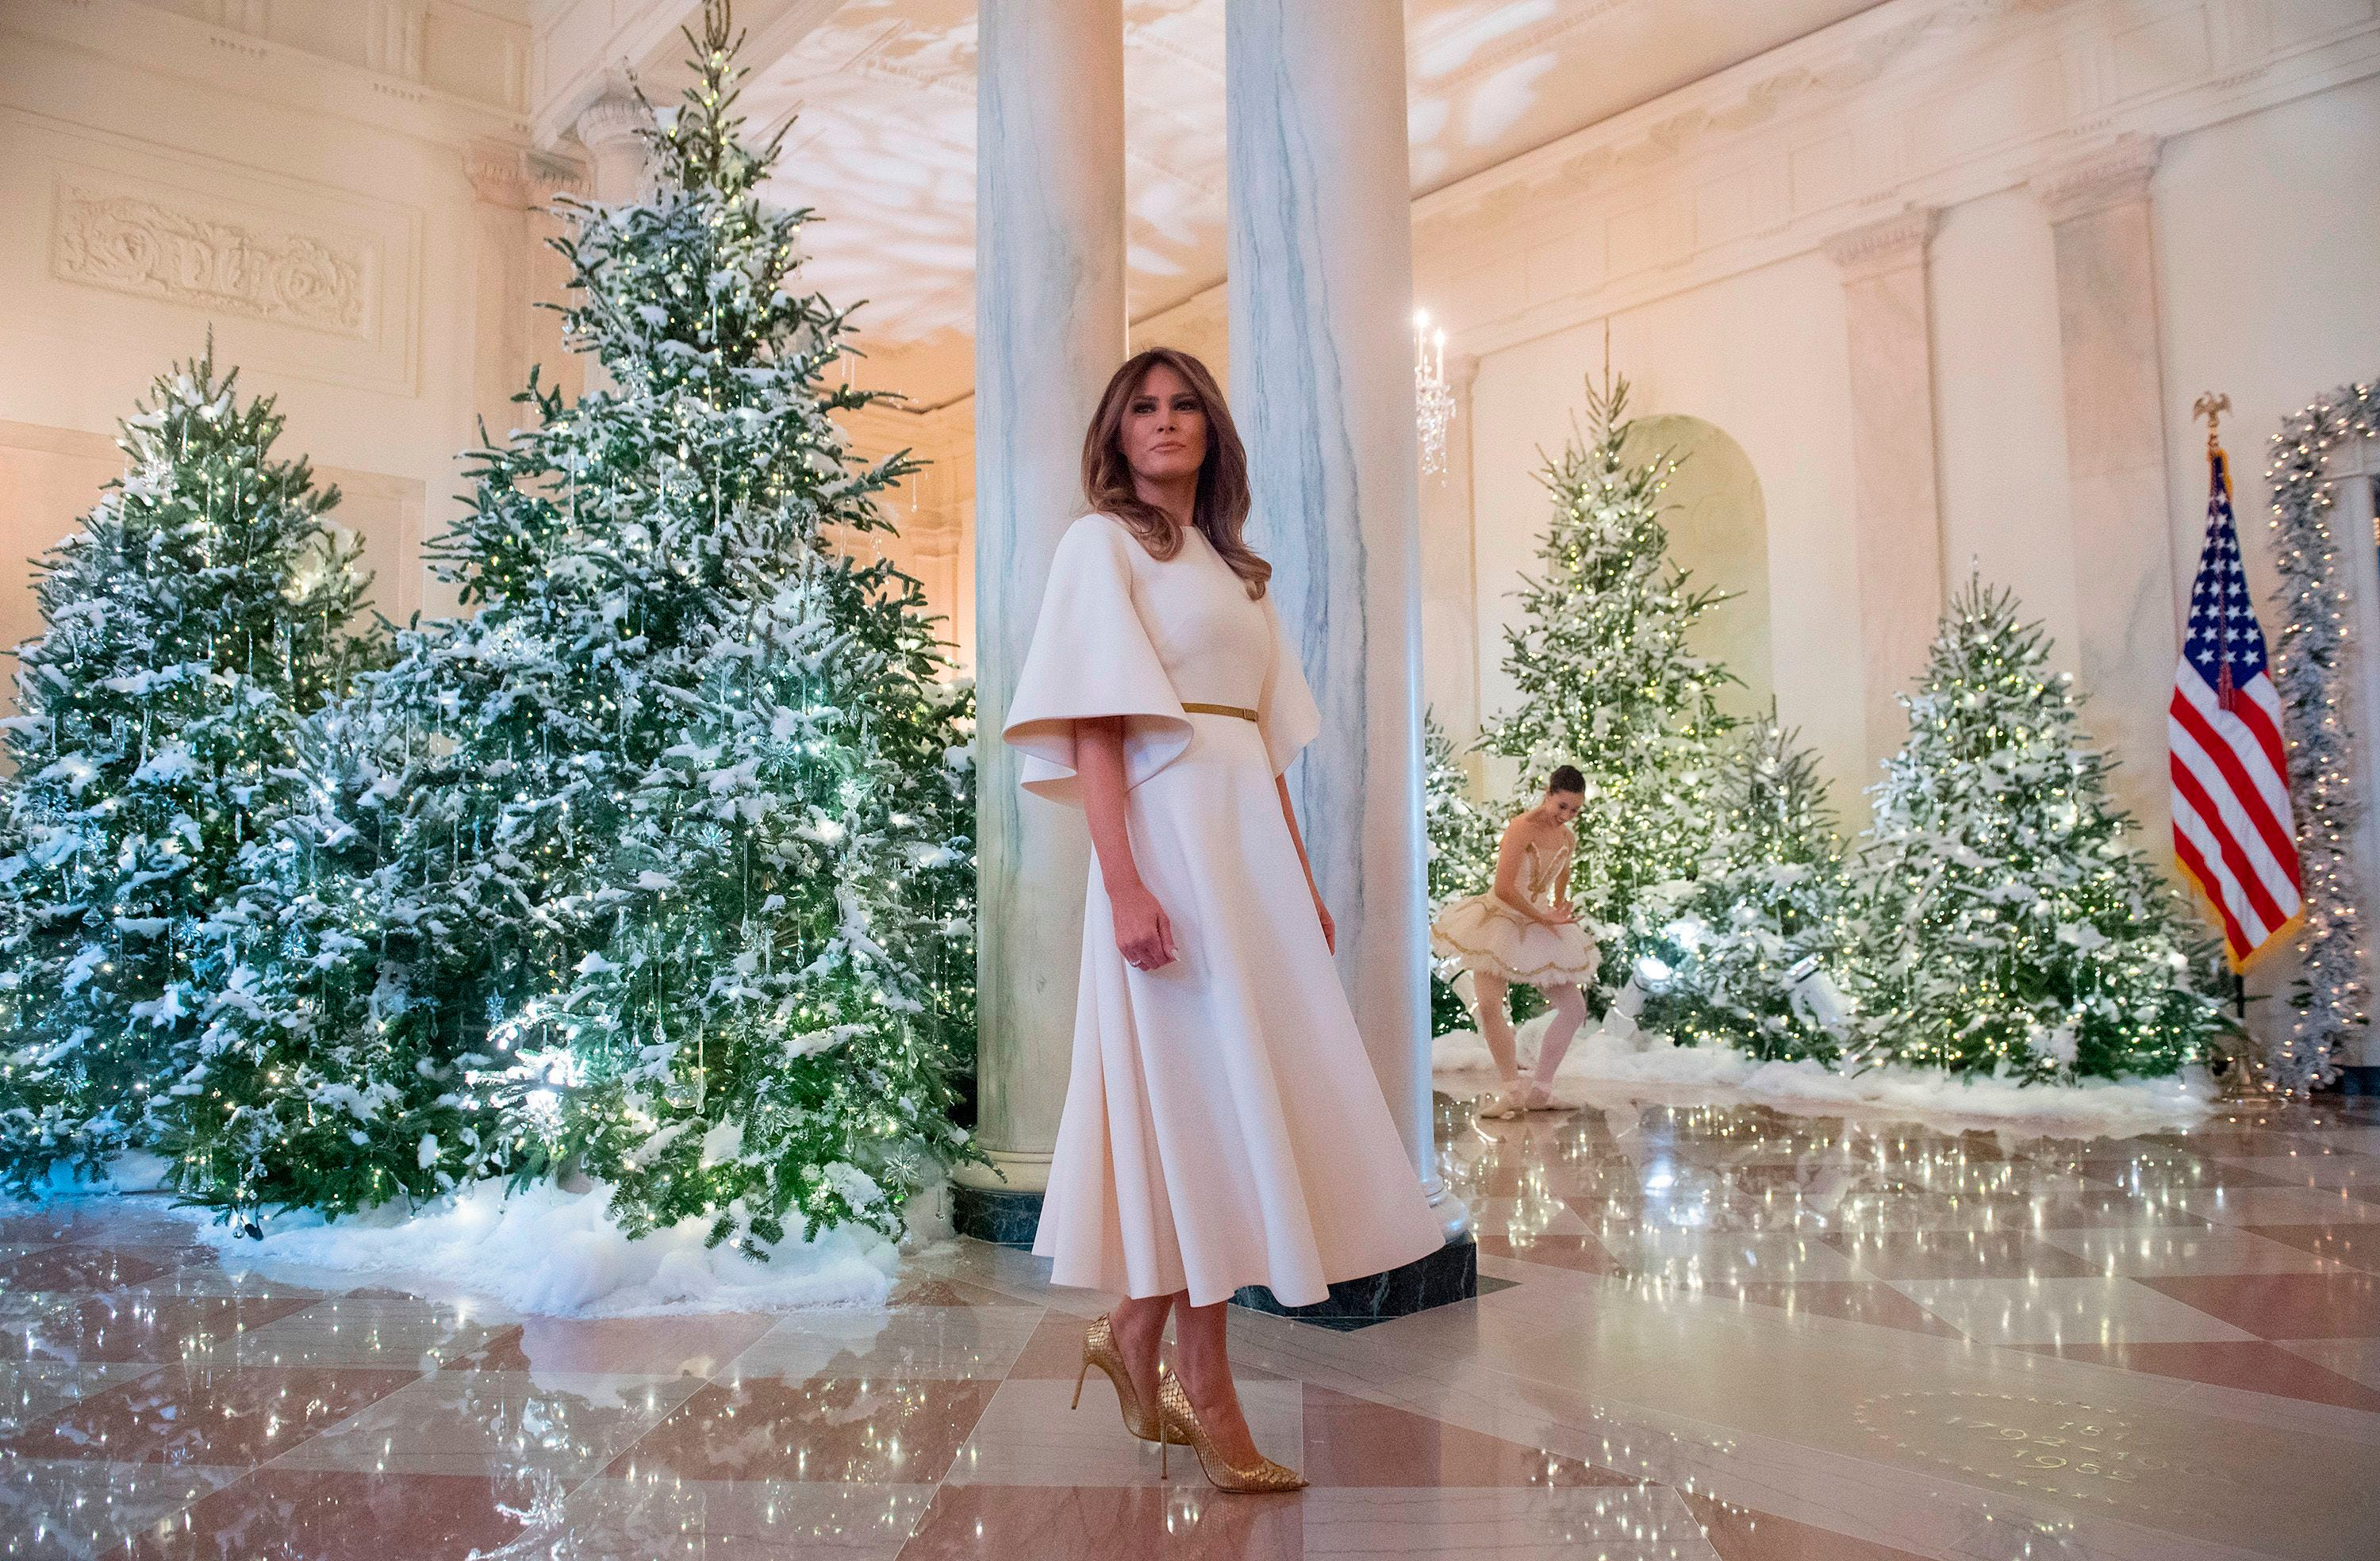 Application To Decorate The White House For Christmas 2020 Melania Trump's Christmas decorating curse leaks, Twitter reacts